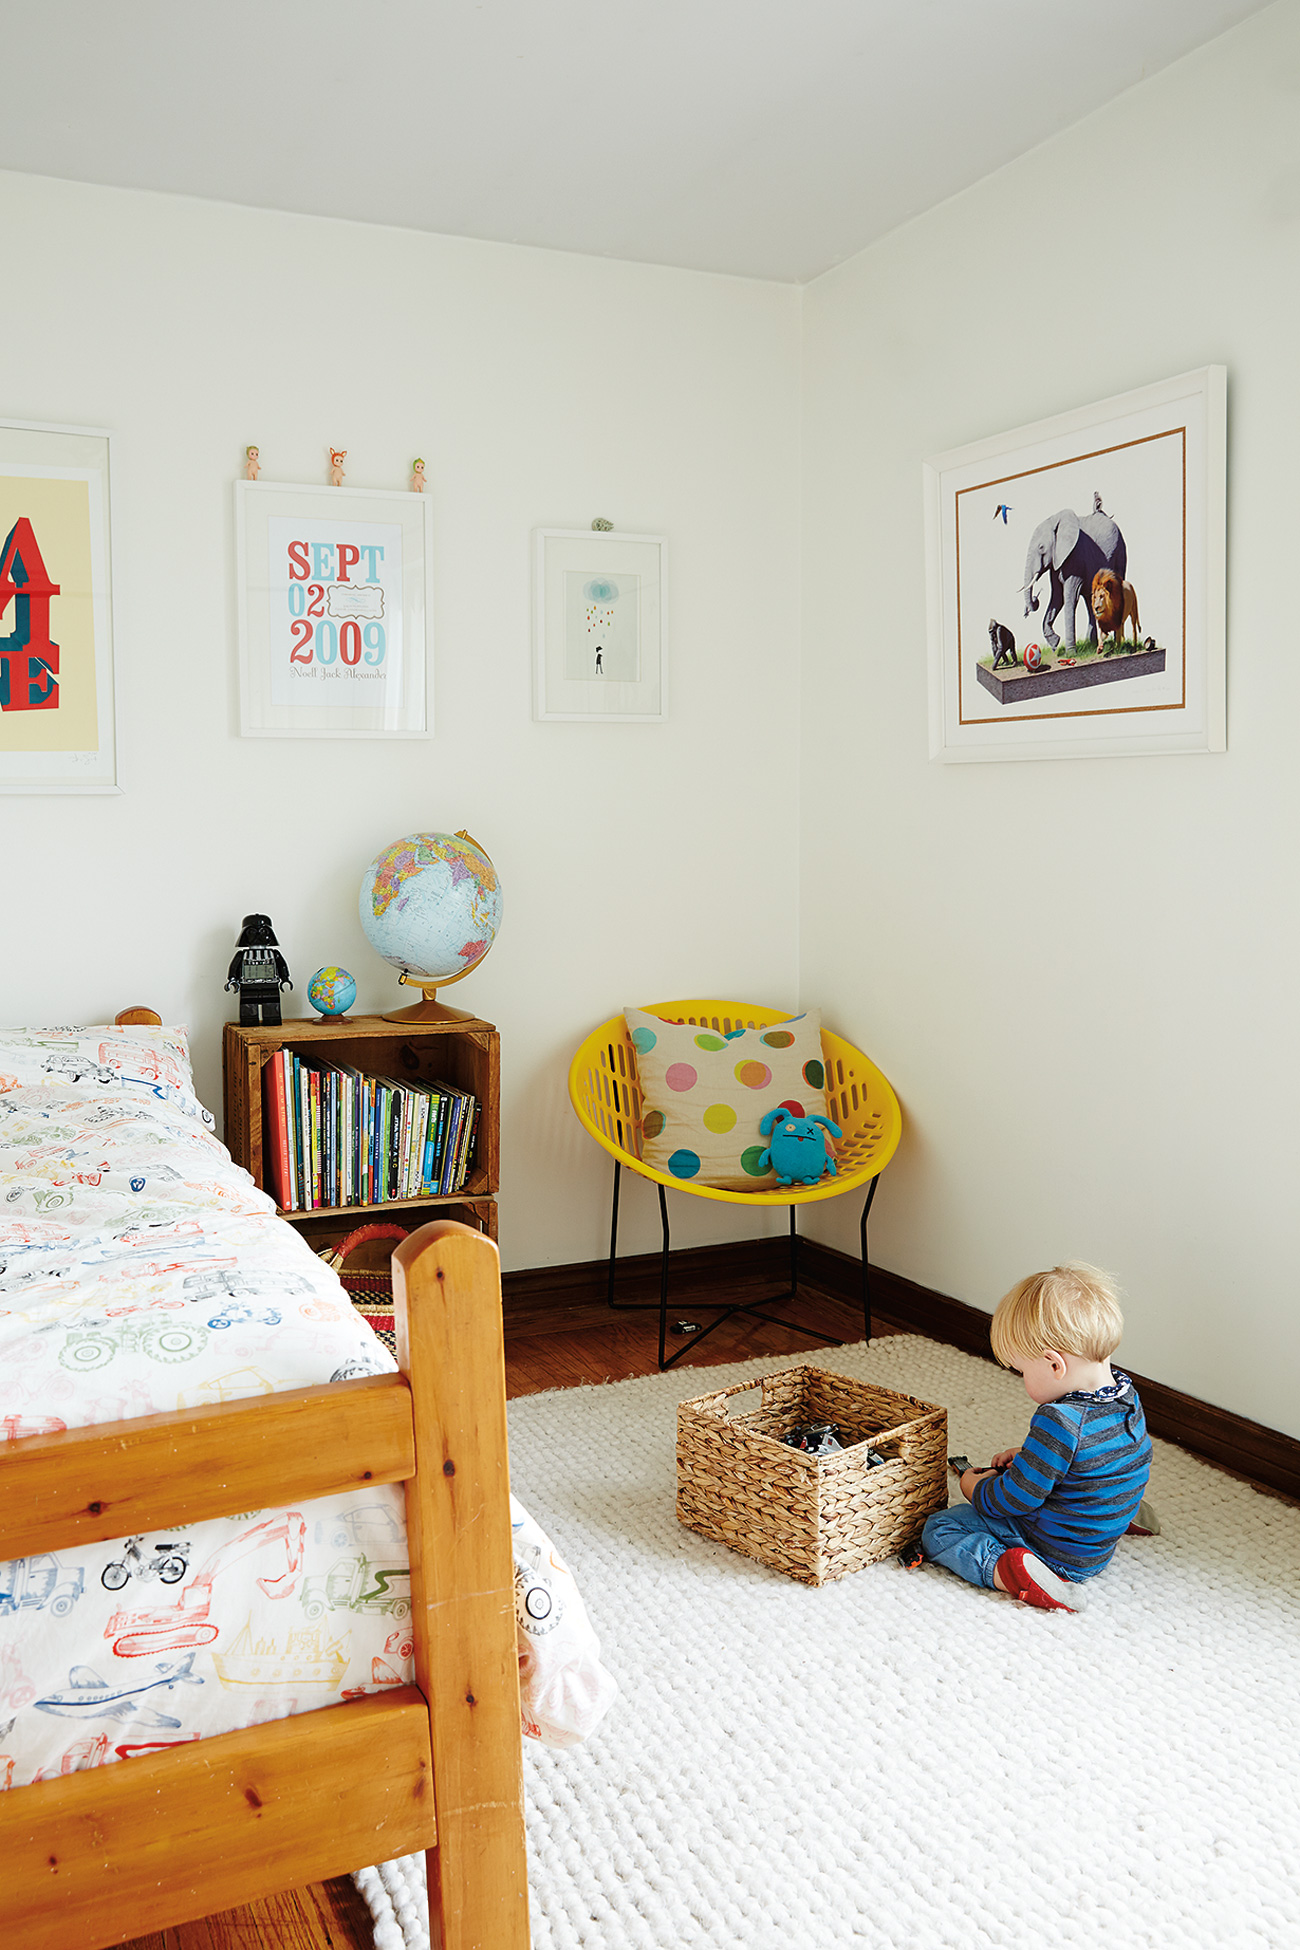 In Noell's room: a prized print of circus animals gone rogue by Josh Keyes. Mini Solair chair from Studio Pazo; duvet by IKEA.